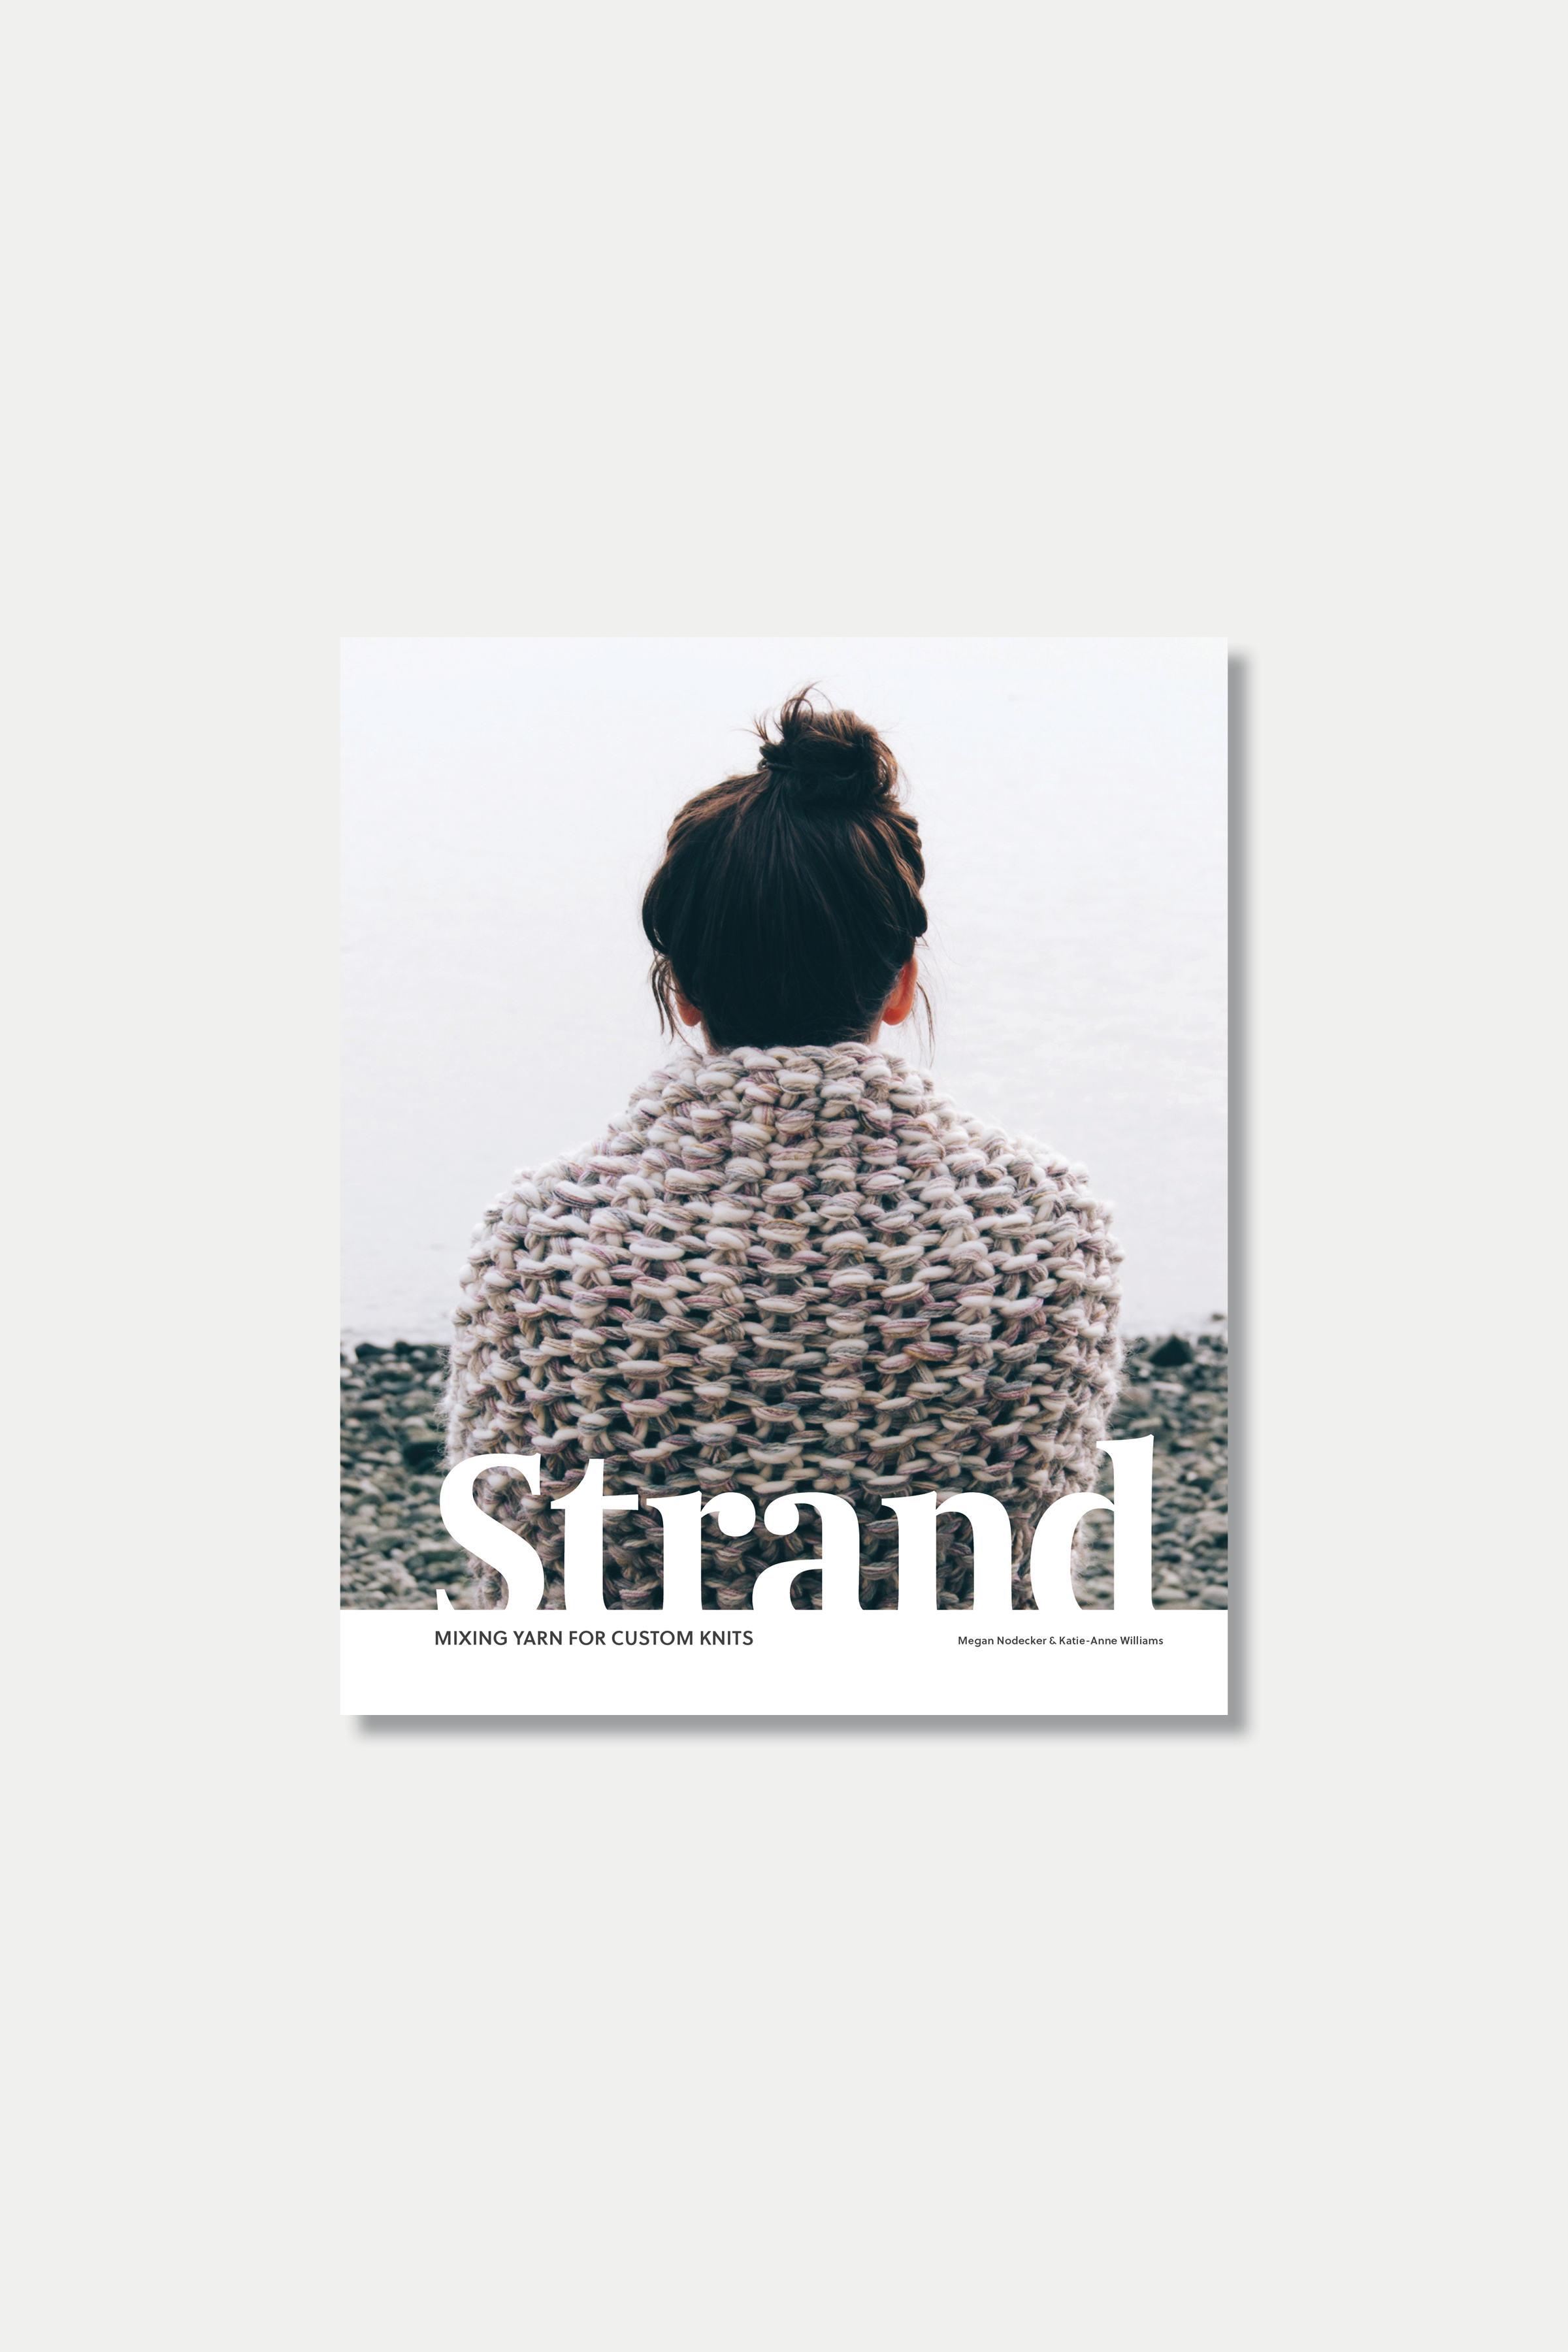 Book | Strand  Wholesale Price (min. 3): $20.00 RRSP: $30.00   Learn to knit and create unique chunky fabrics with Strand. Pip & Pin's first book shows you the ins and outs of knitting basics with a comprehensive illustrated guide, plus tips and tricks to get creative by combining yarns. Whether you're a beginner looking to learn and grow your skills or a seasoned knitter searching for inspiration, Strand is a book for all levels. Each book includes a digital download code.